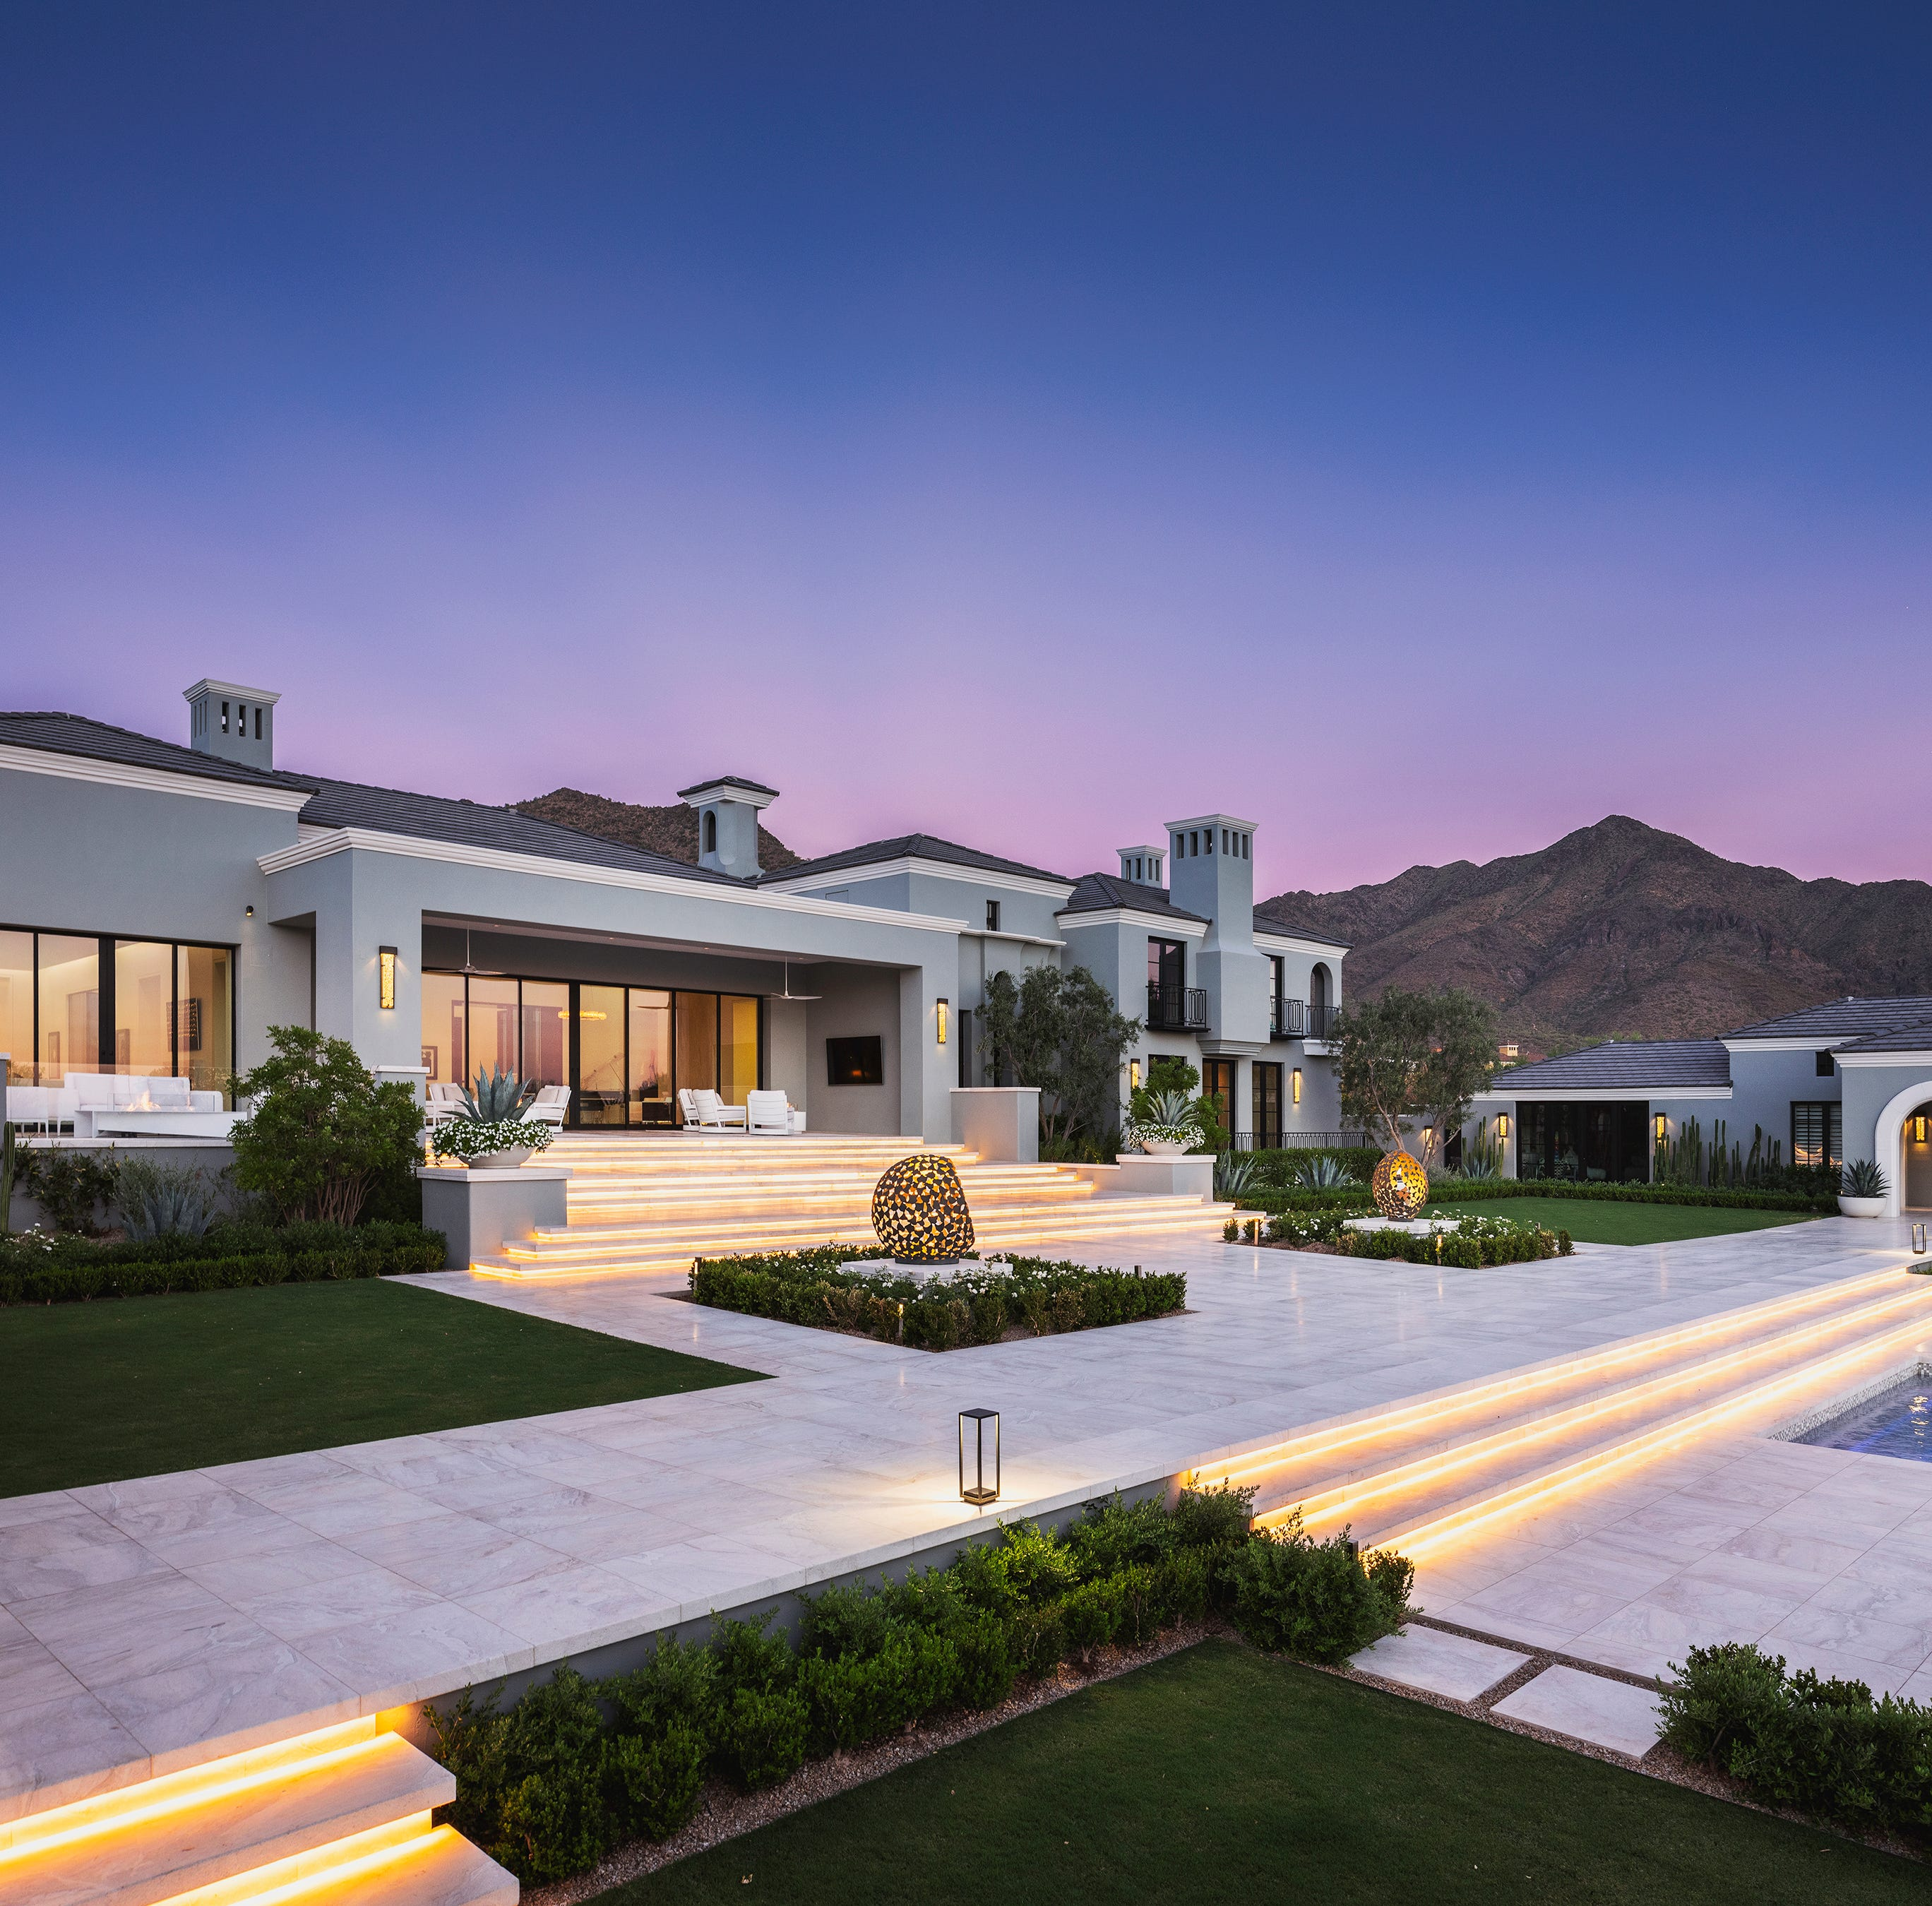 Scottsdale mansion listed for $26 million is Arizona's priciest home for sale